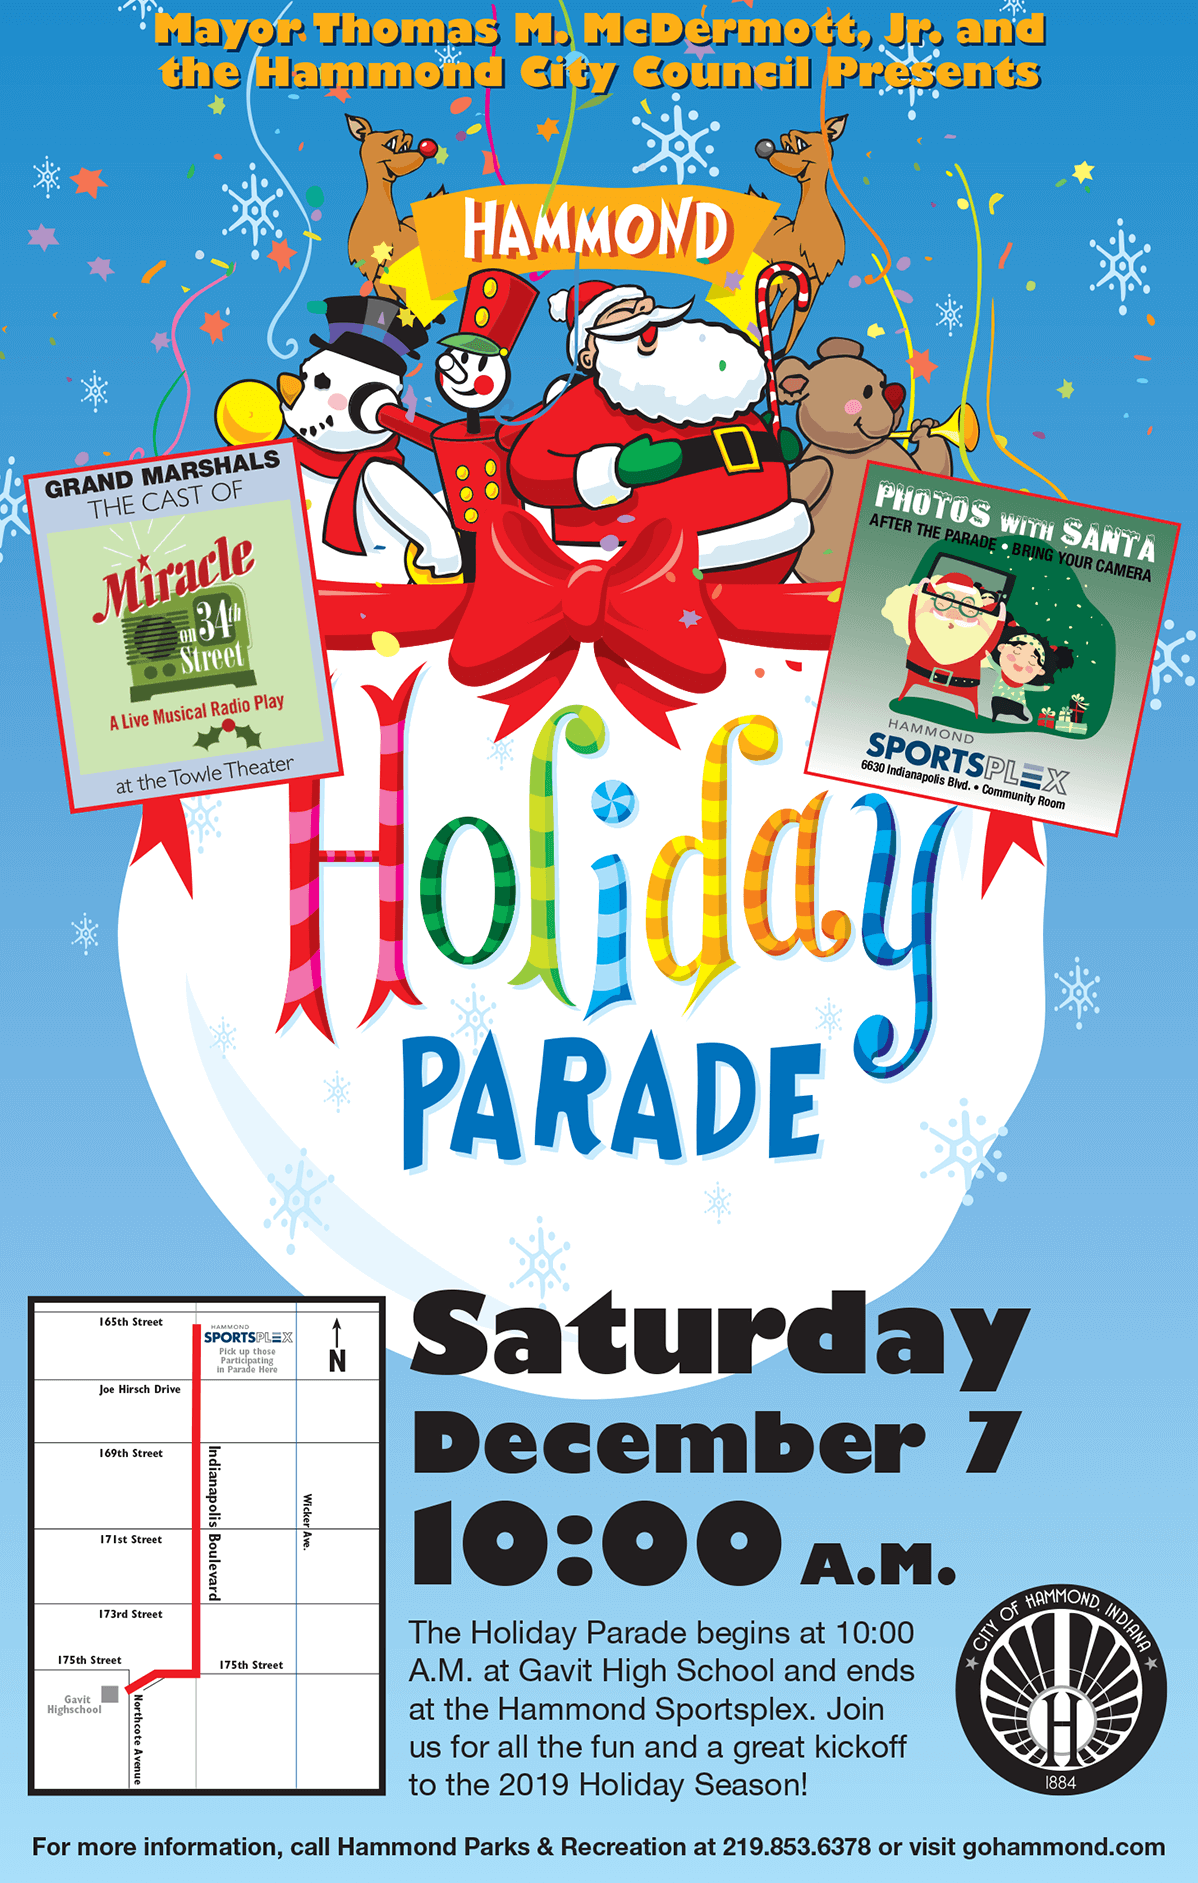 2019 Hammond Holiday Parade